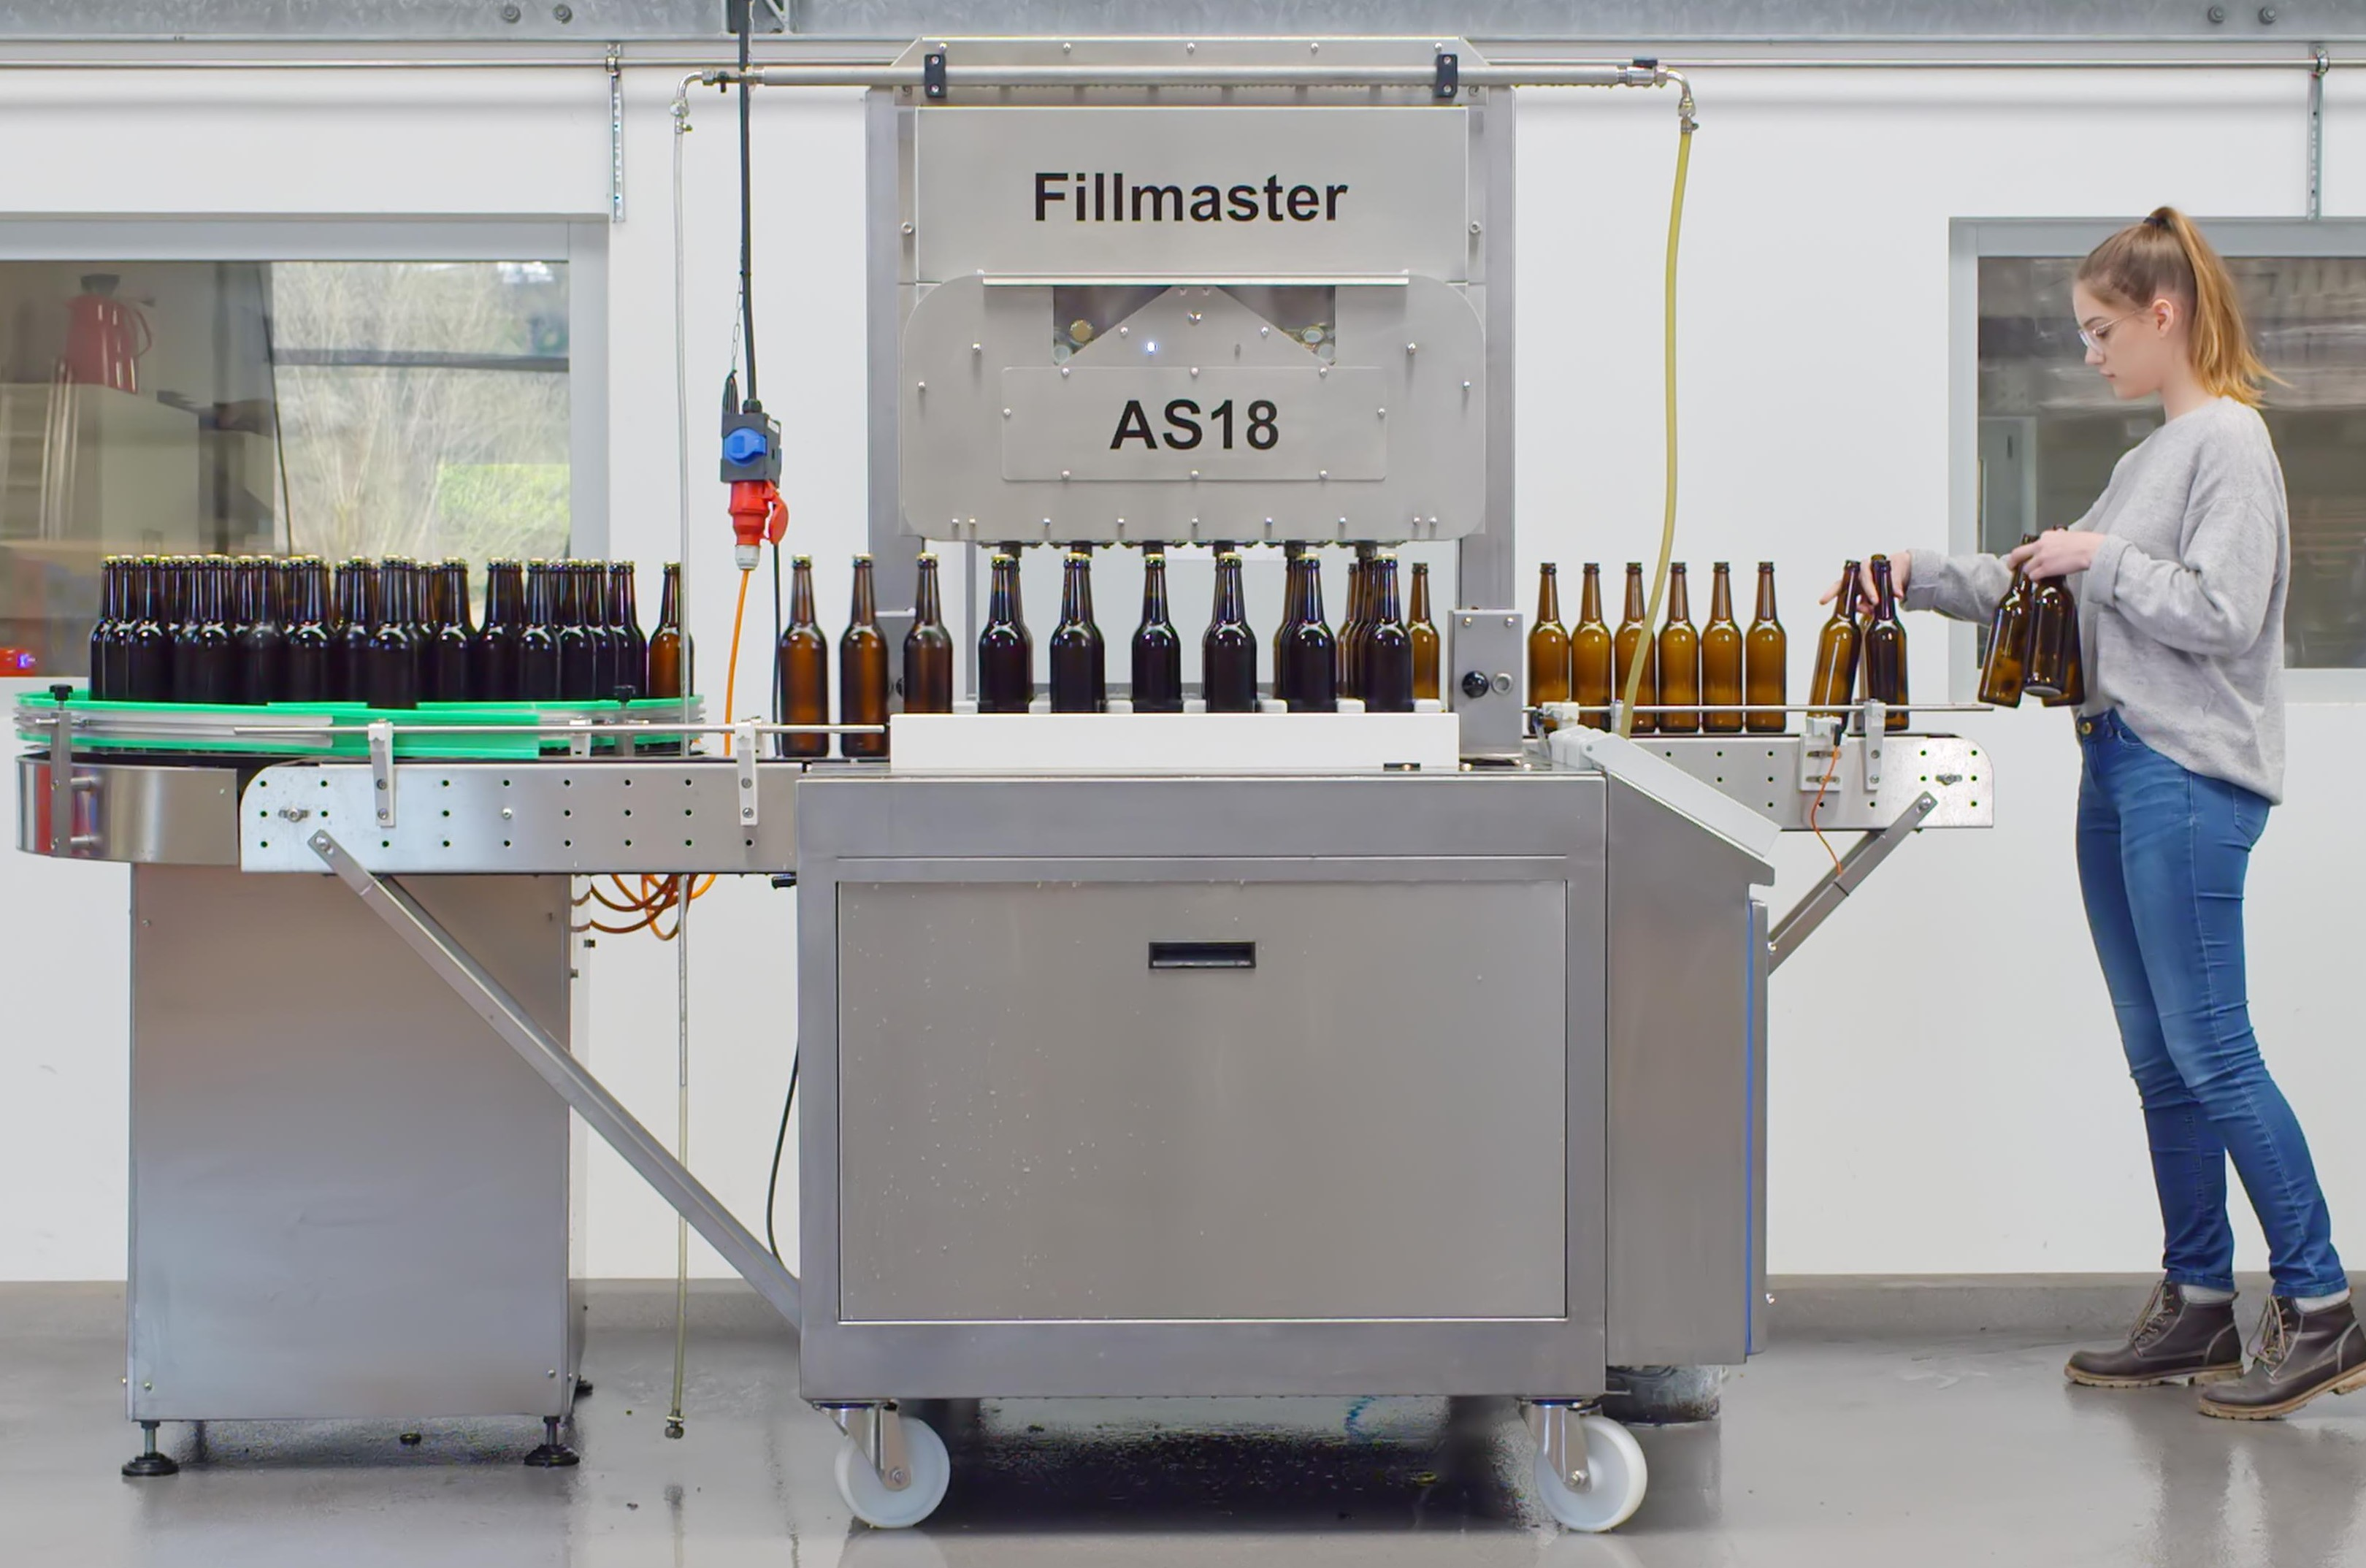 Product picture of Fillmaster AS18